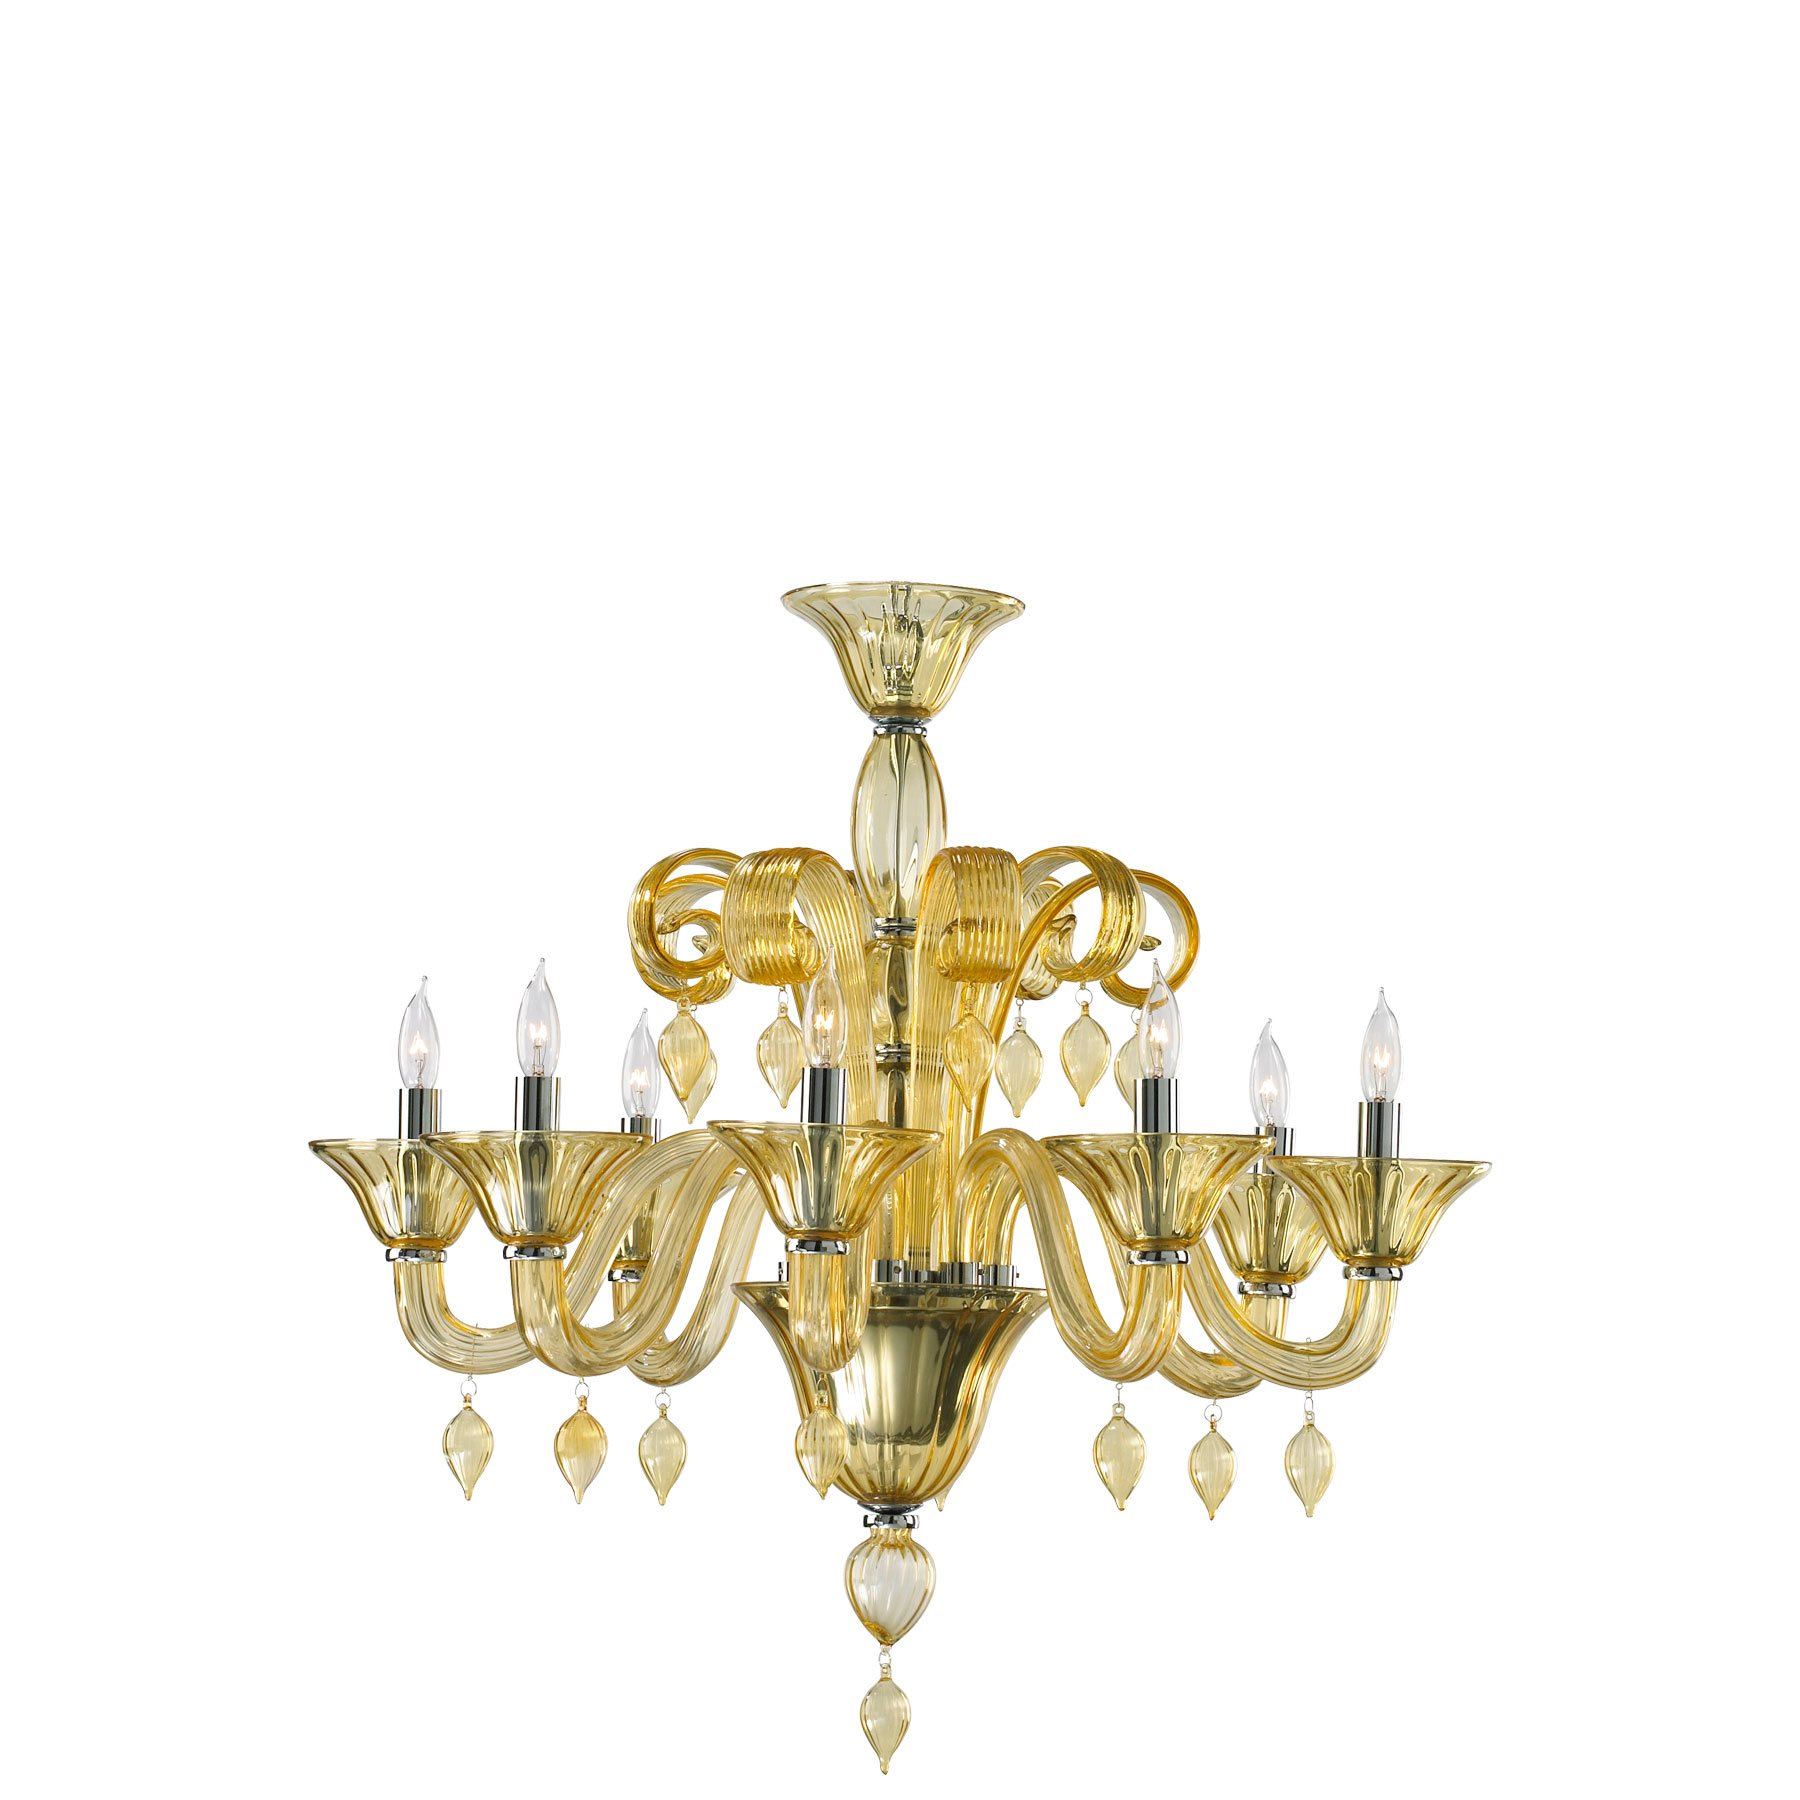 Clearance Chandeliers: [Clearance] Treviso Amber Murano Style Glass 8-Light